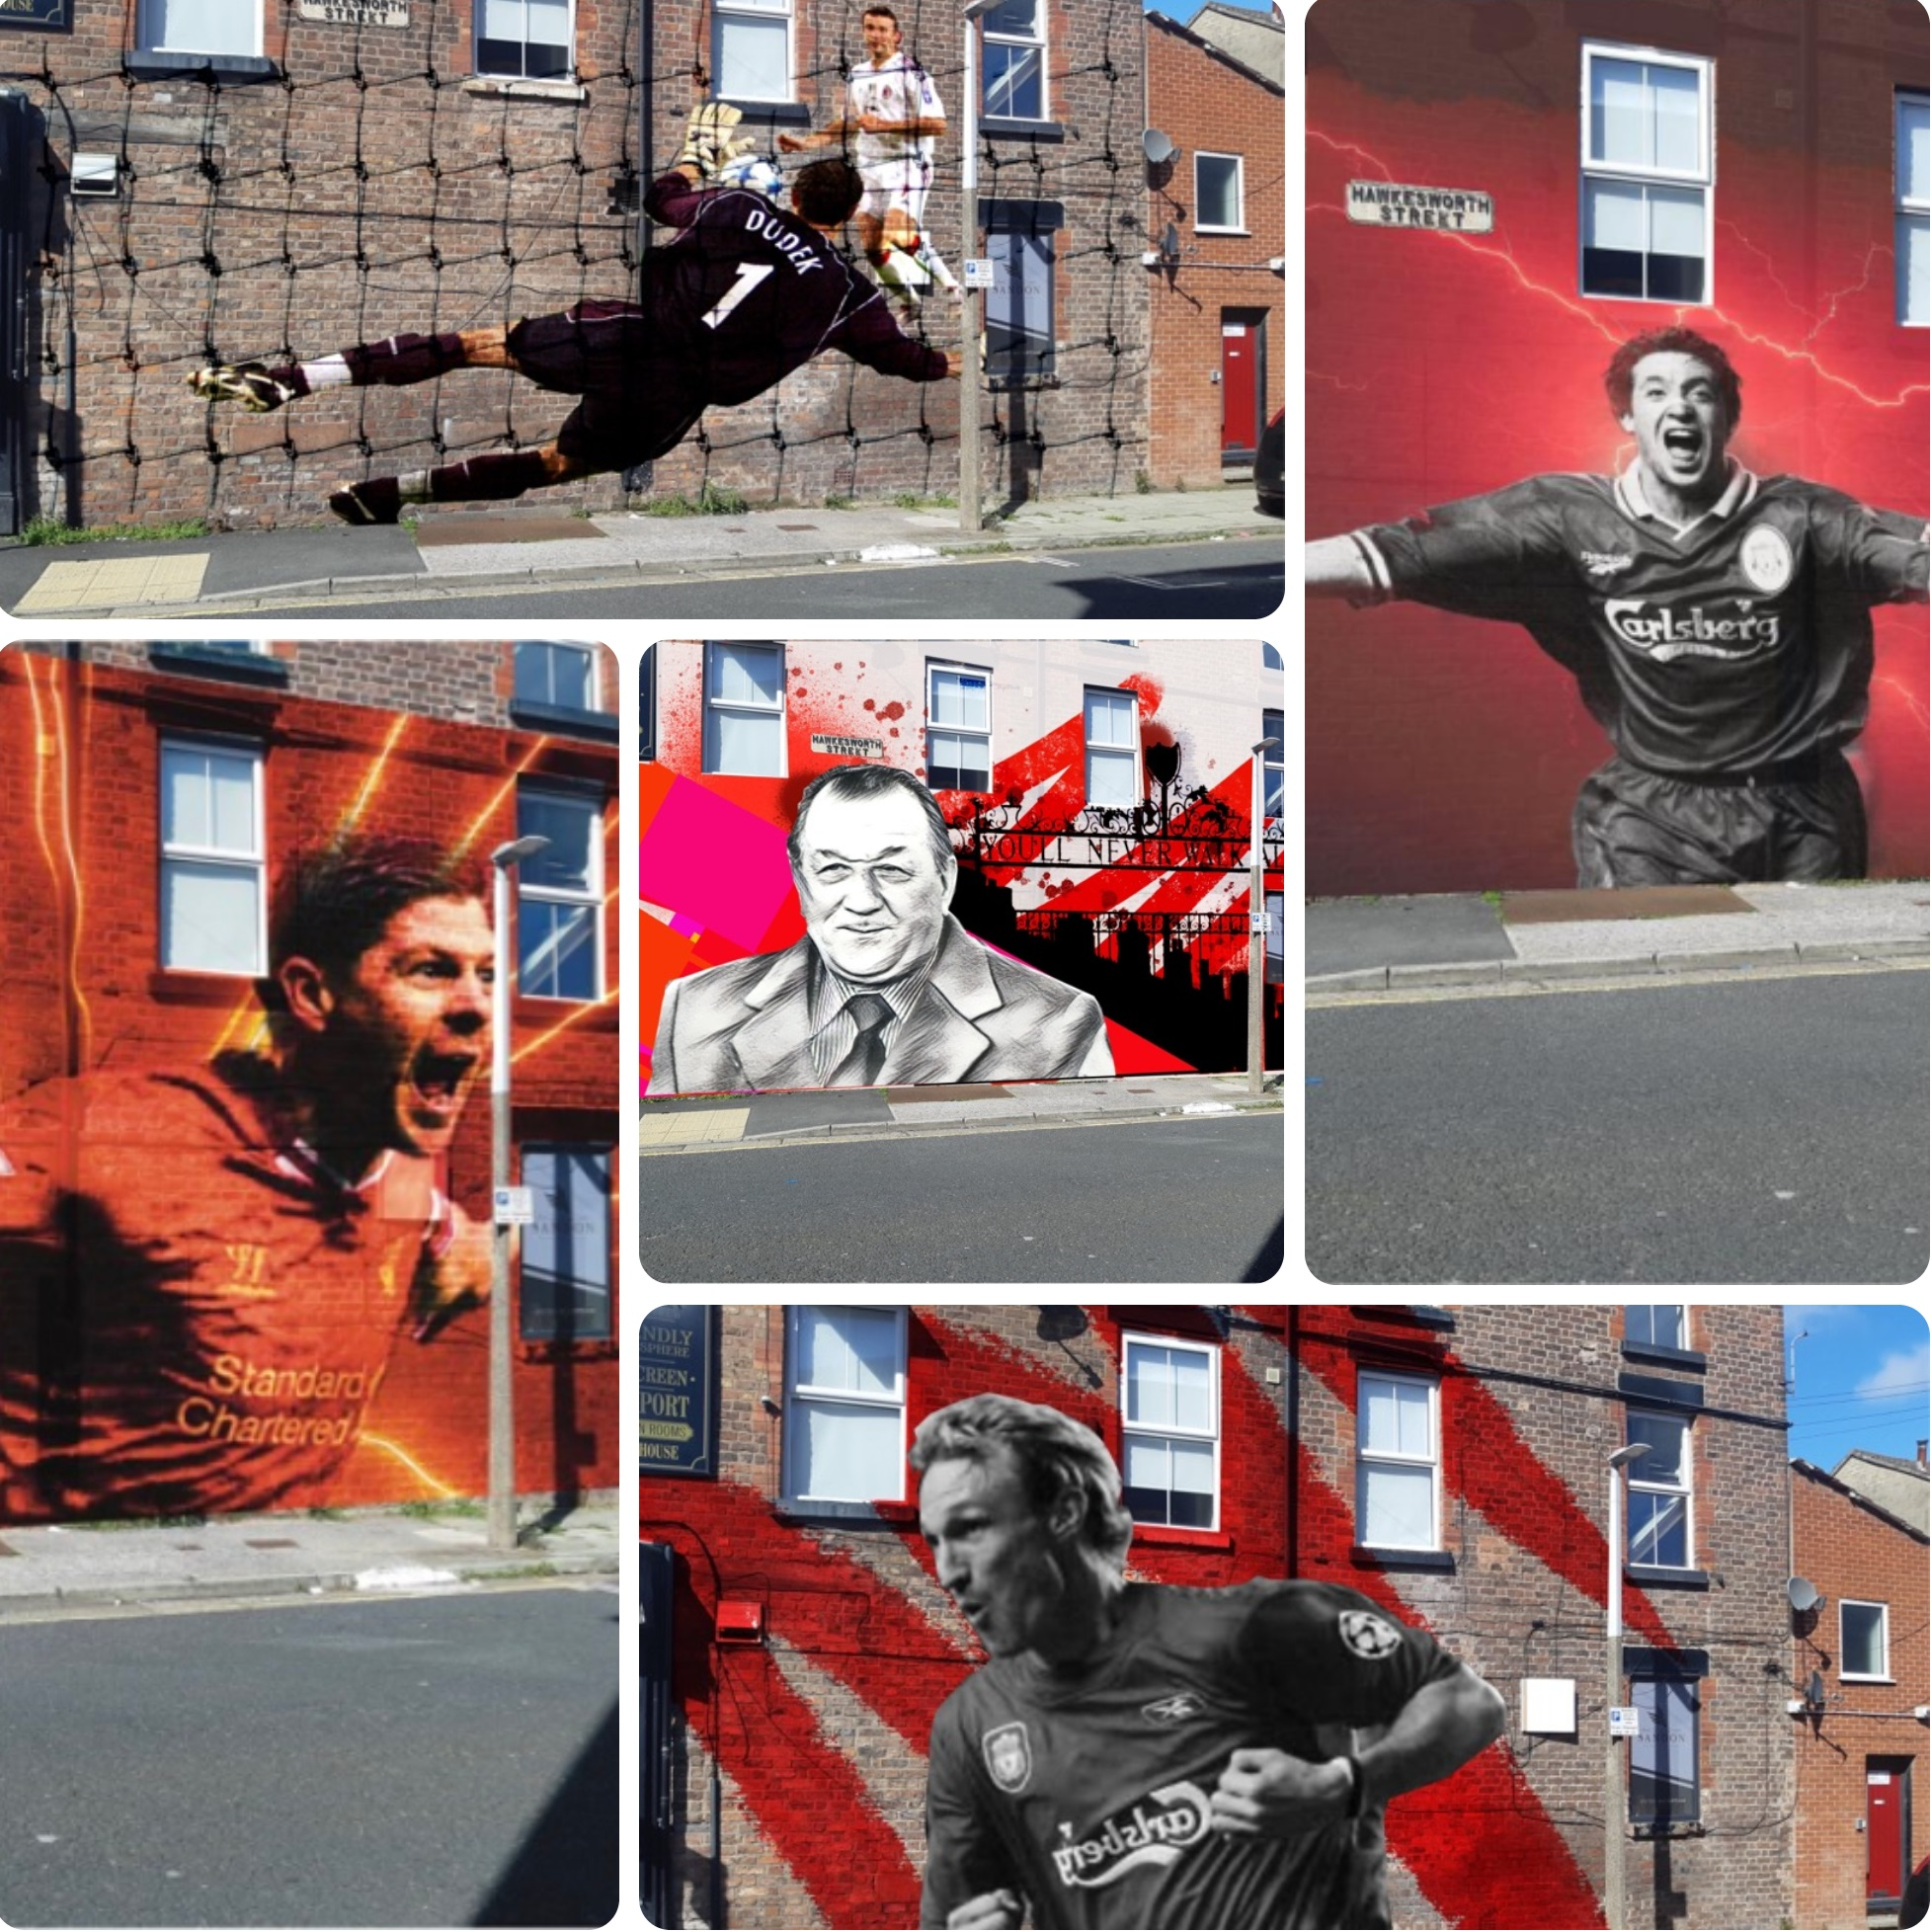 (Images) Liverpool fans handed chance to vote on one of five mural options to be painted at iconic city spot